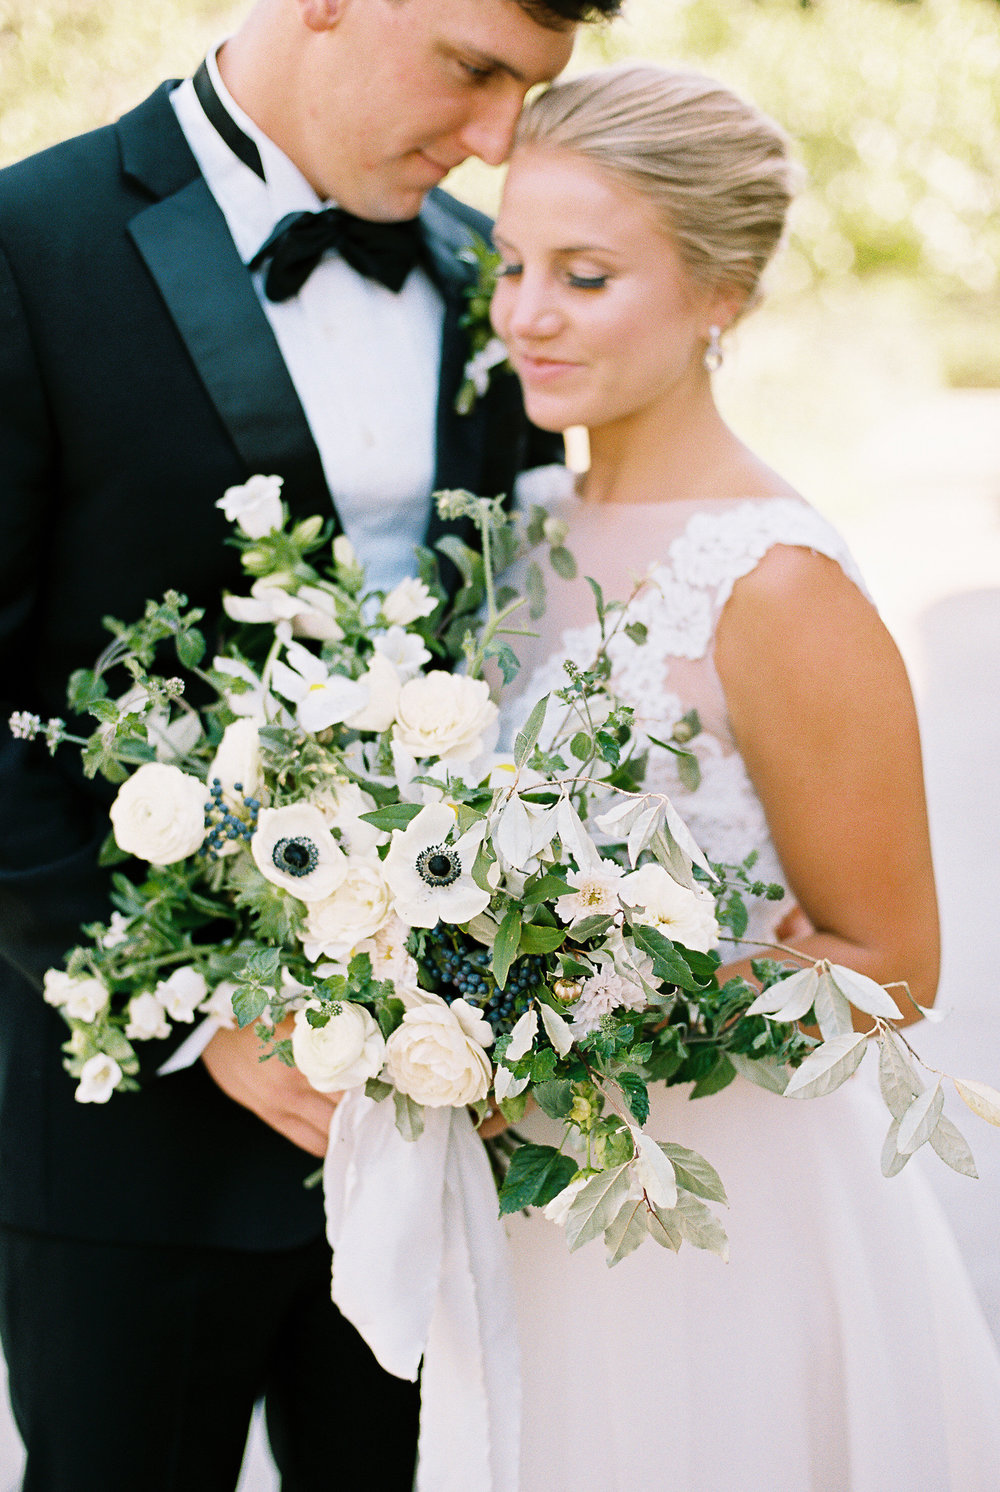 white-and-navy-wedding-bouquet.jpg